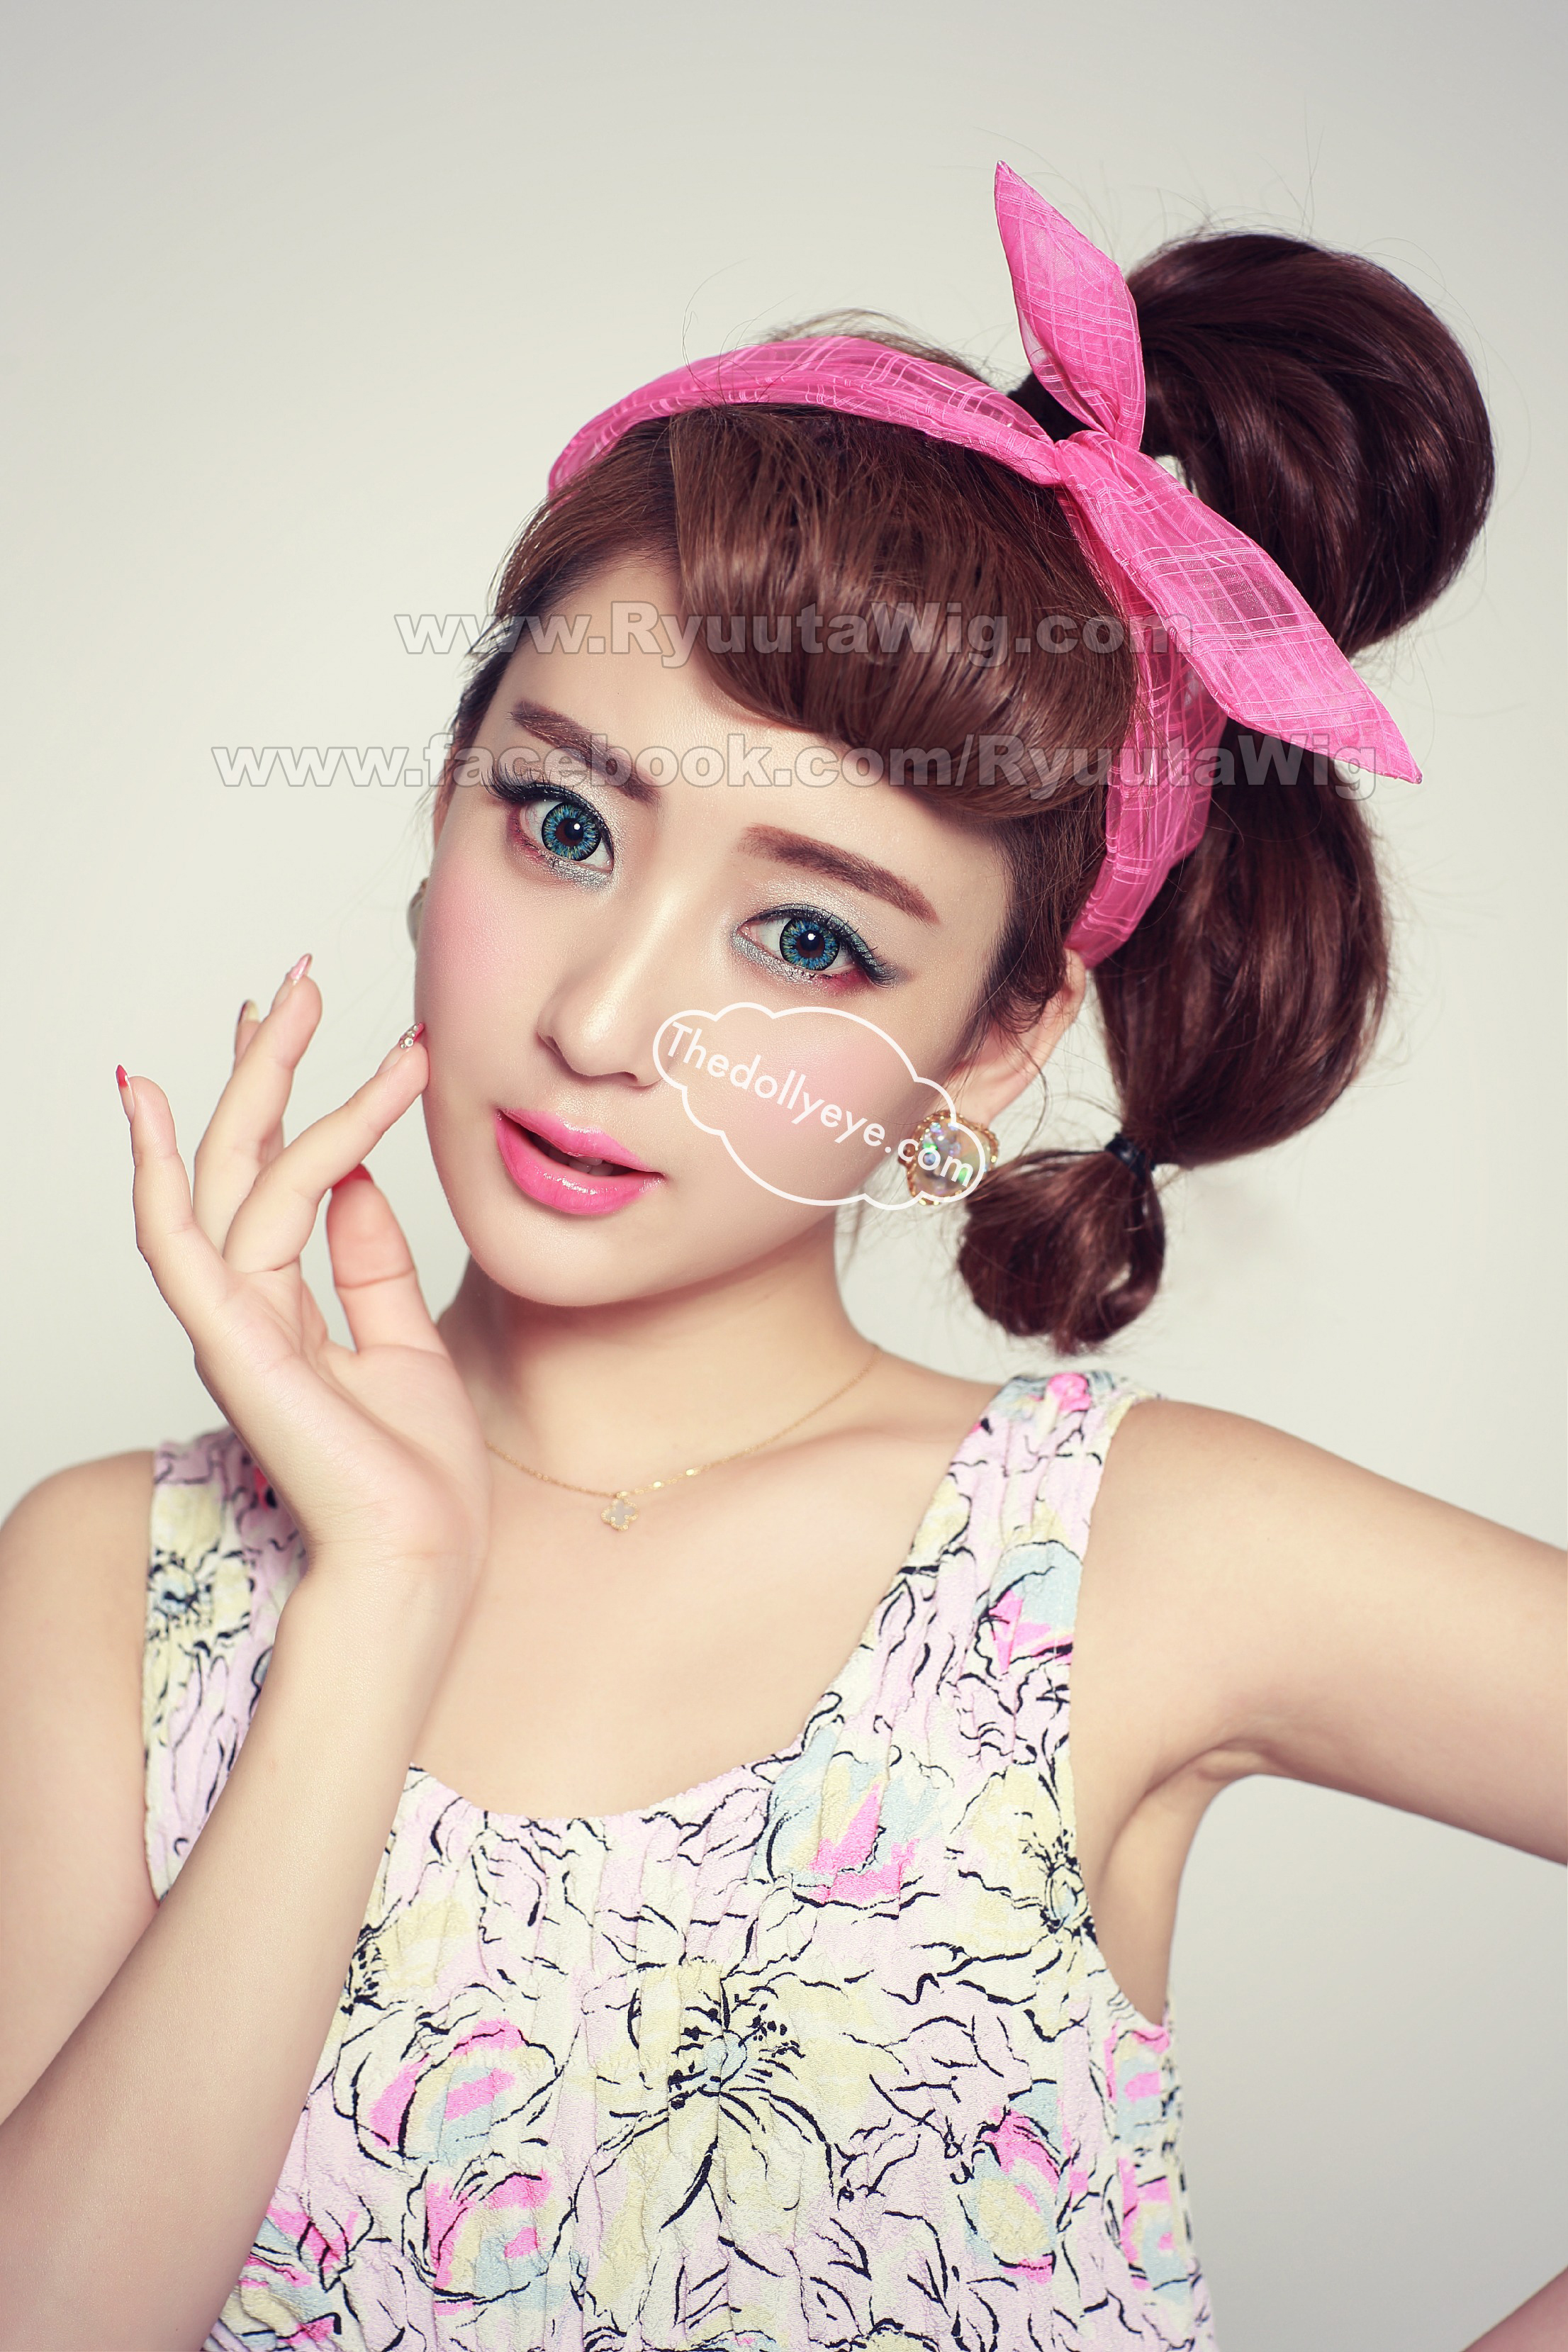 Dolly Eye Ryuuta Wig Hair Extensions Accessories Softlens Lovely Girl Sweety Black